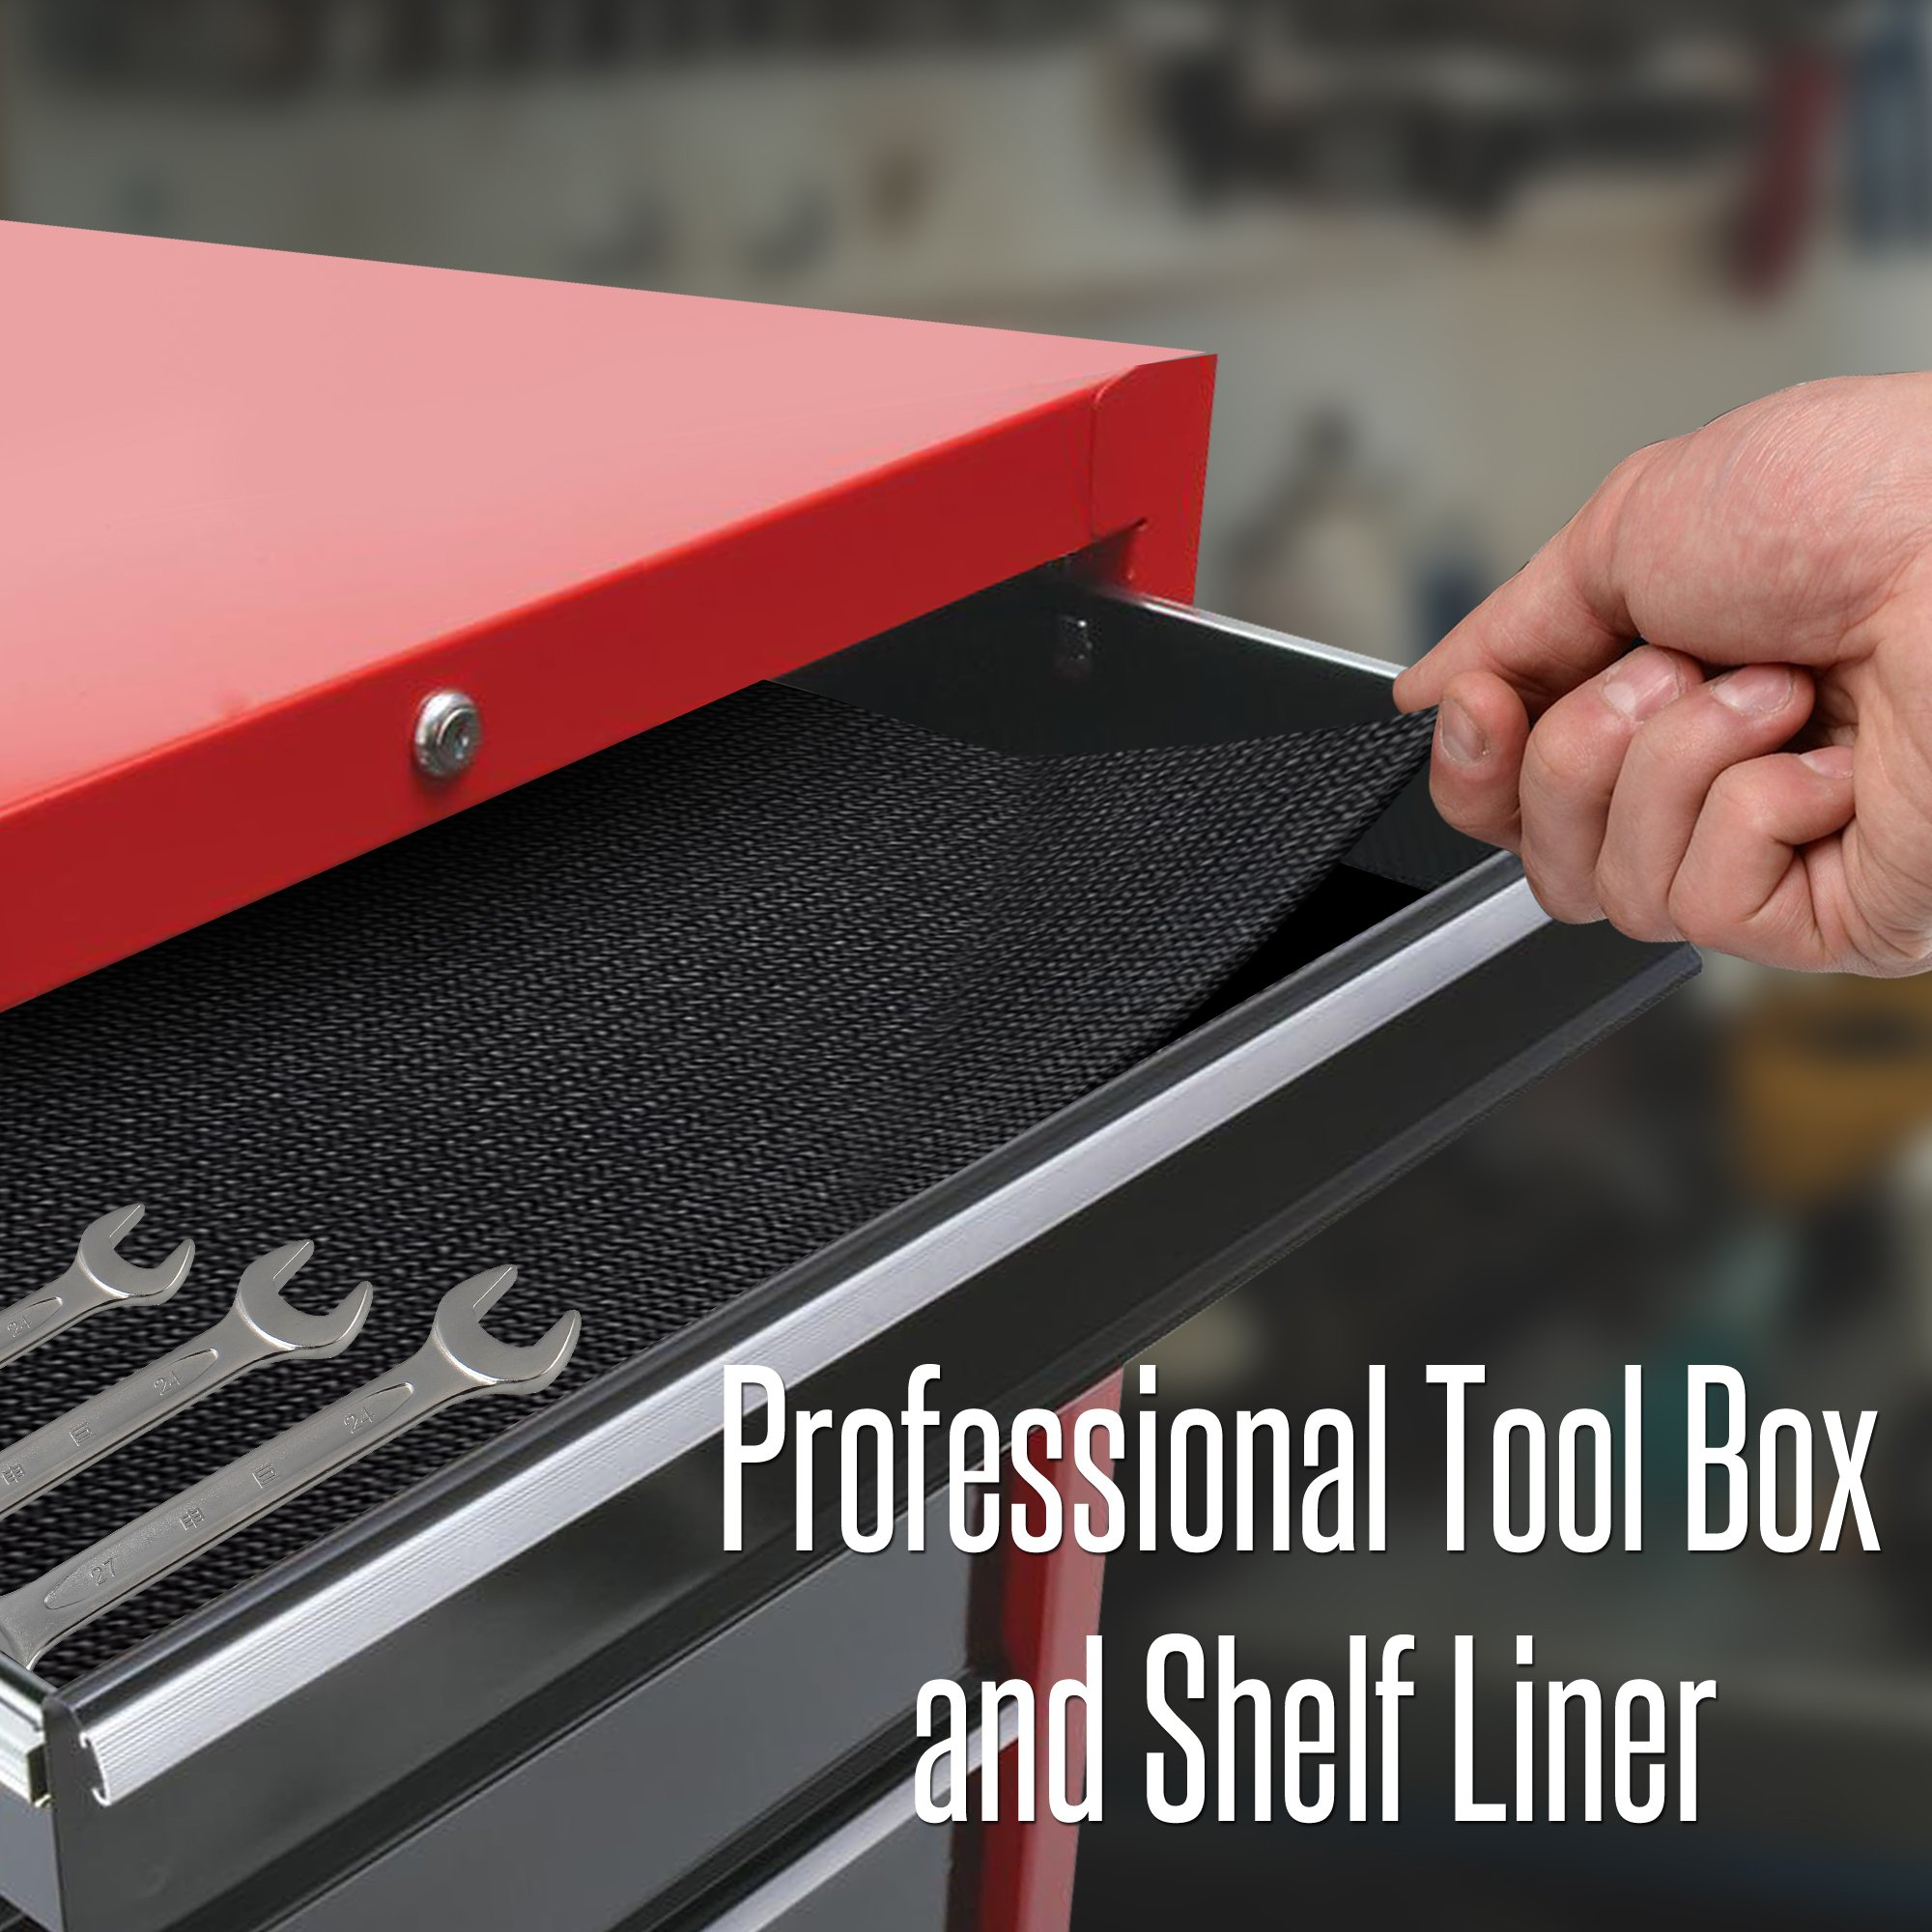 Reizen Tech Heavy Duty Tool Box Liner - 16''x7 Feet, Durable, Slip Resistant to Keep Garage Shelf, Tool Chest, Workbench Drawer, Cabinet, and Roller Tray Organized & Tools Protected, Thick 3mm by Reizen Tech (Image #4)